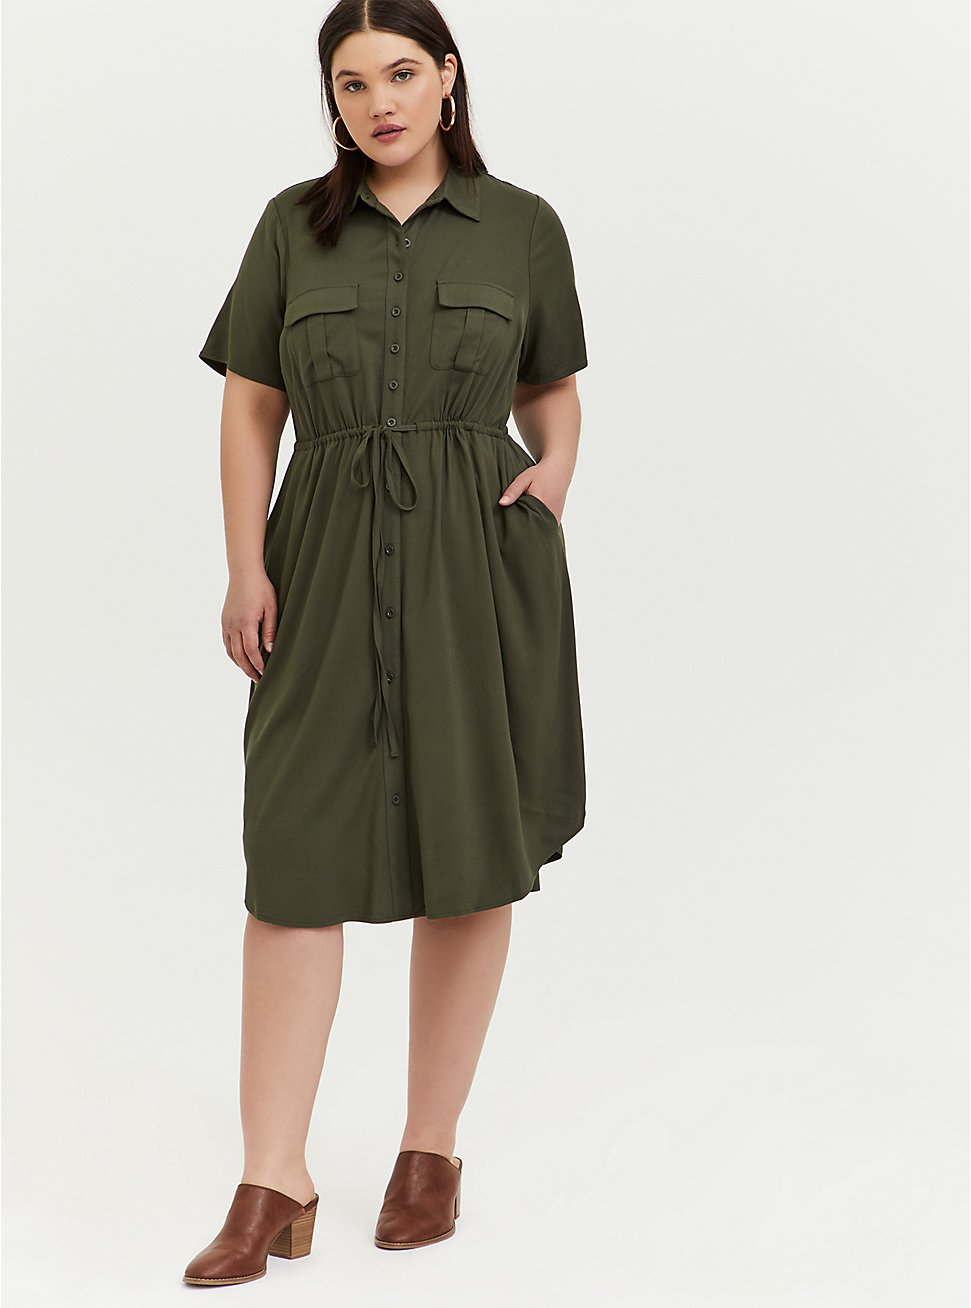 Plus Size Olive Green Twill Button Front Drawstring Shirt Dress, DEEP DEPTHS, hi-res